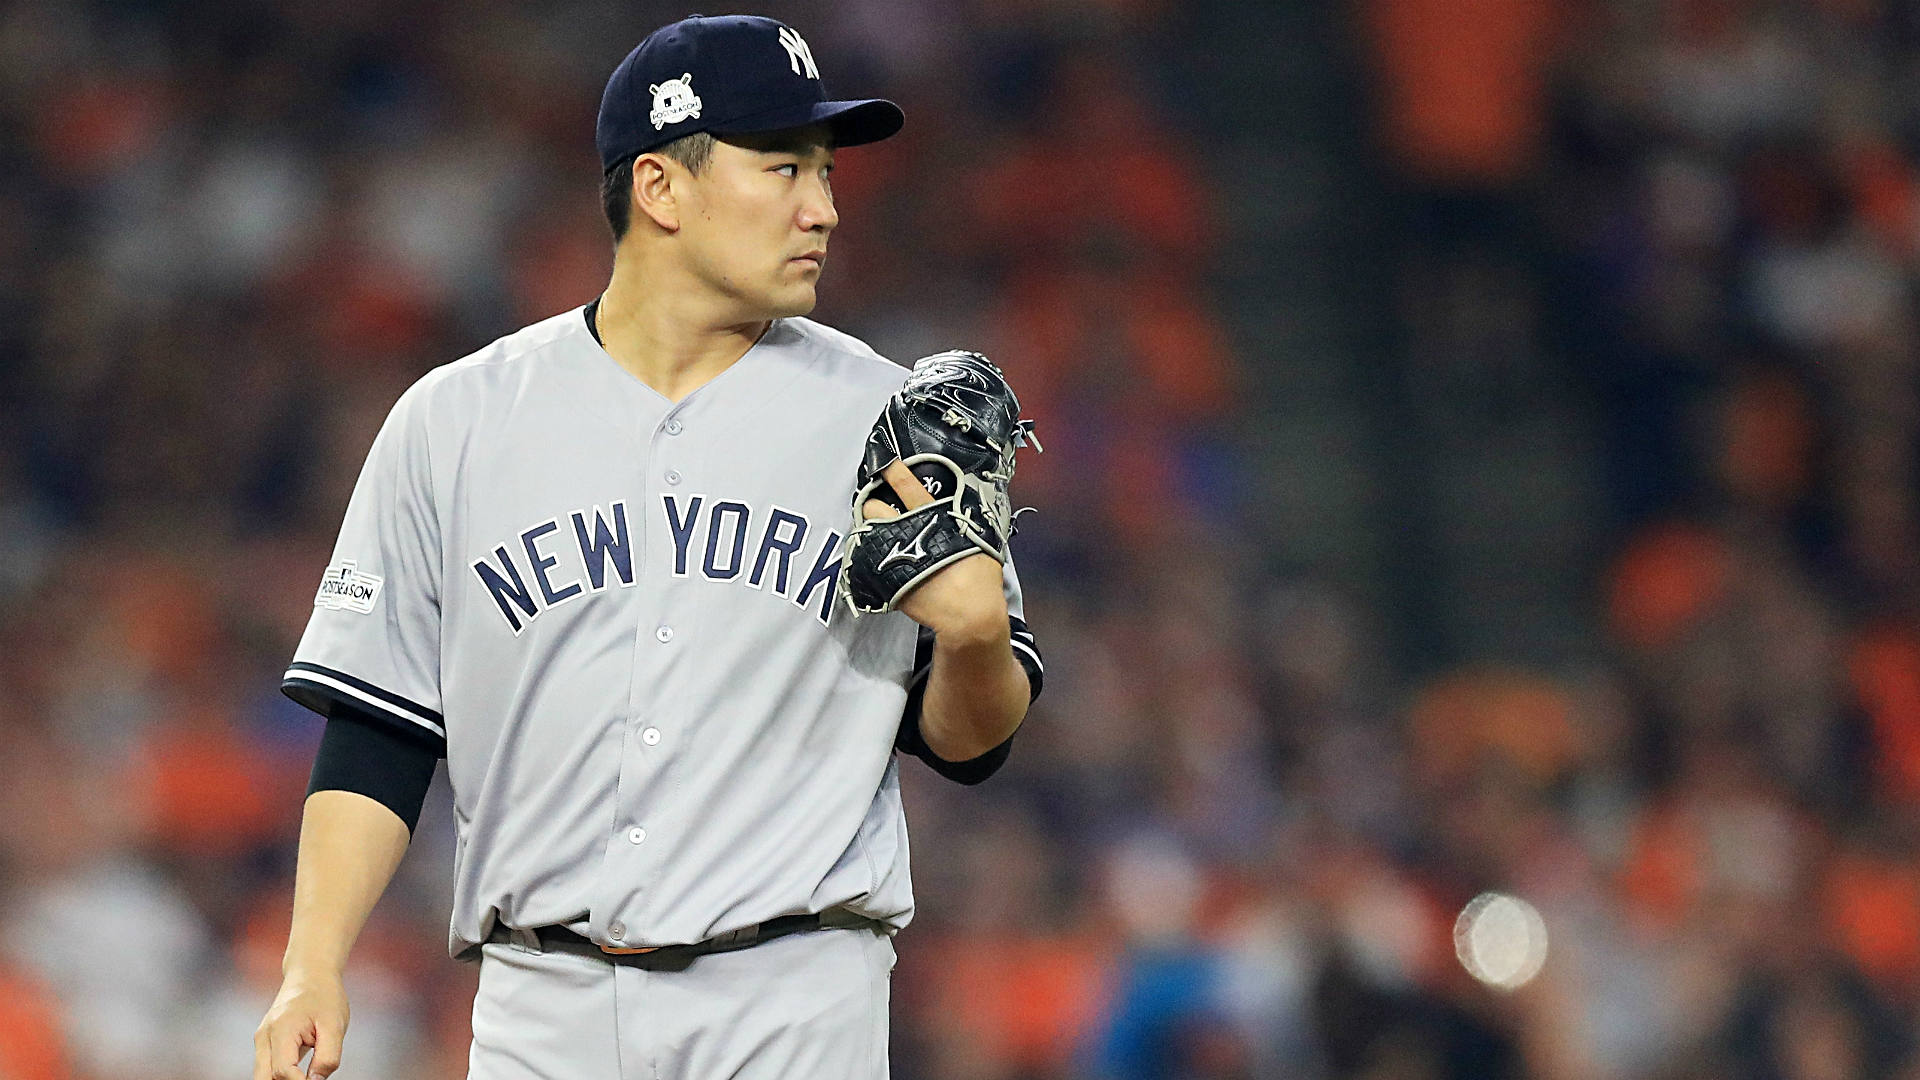 Photo of Masahiro Tanaka hit in head by Giancarlo Stanton line drive throughout Yankees camp